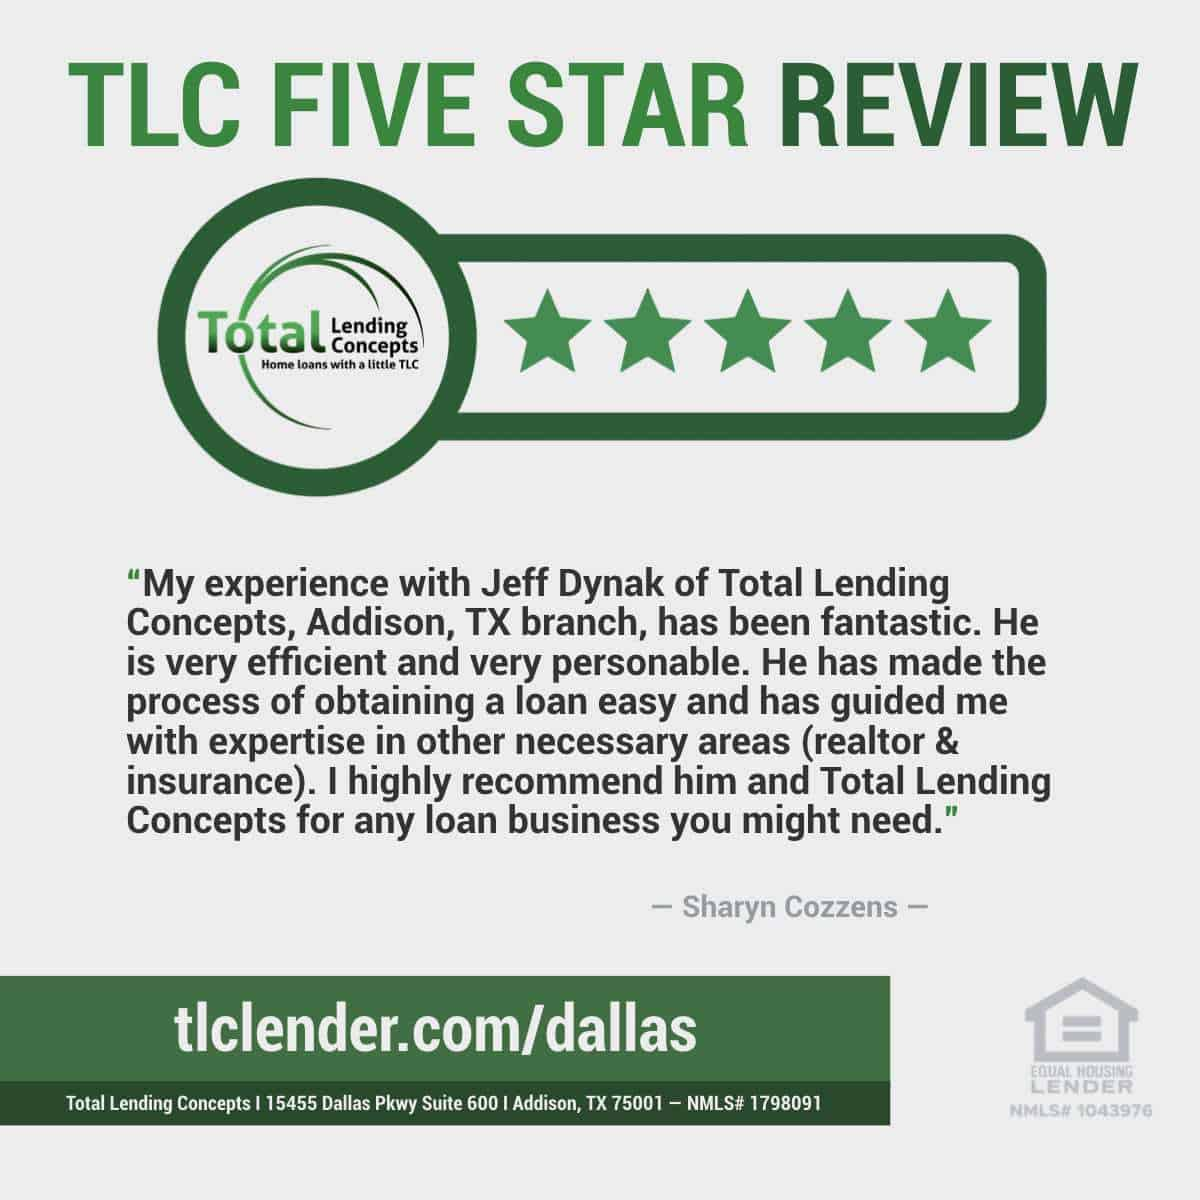 Total-Lending-Concepts-Five-Star-Review-Sharyn-Cozzens-in-Addison-Texas-for-Jeff-Dynak-House-Mortgage